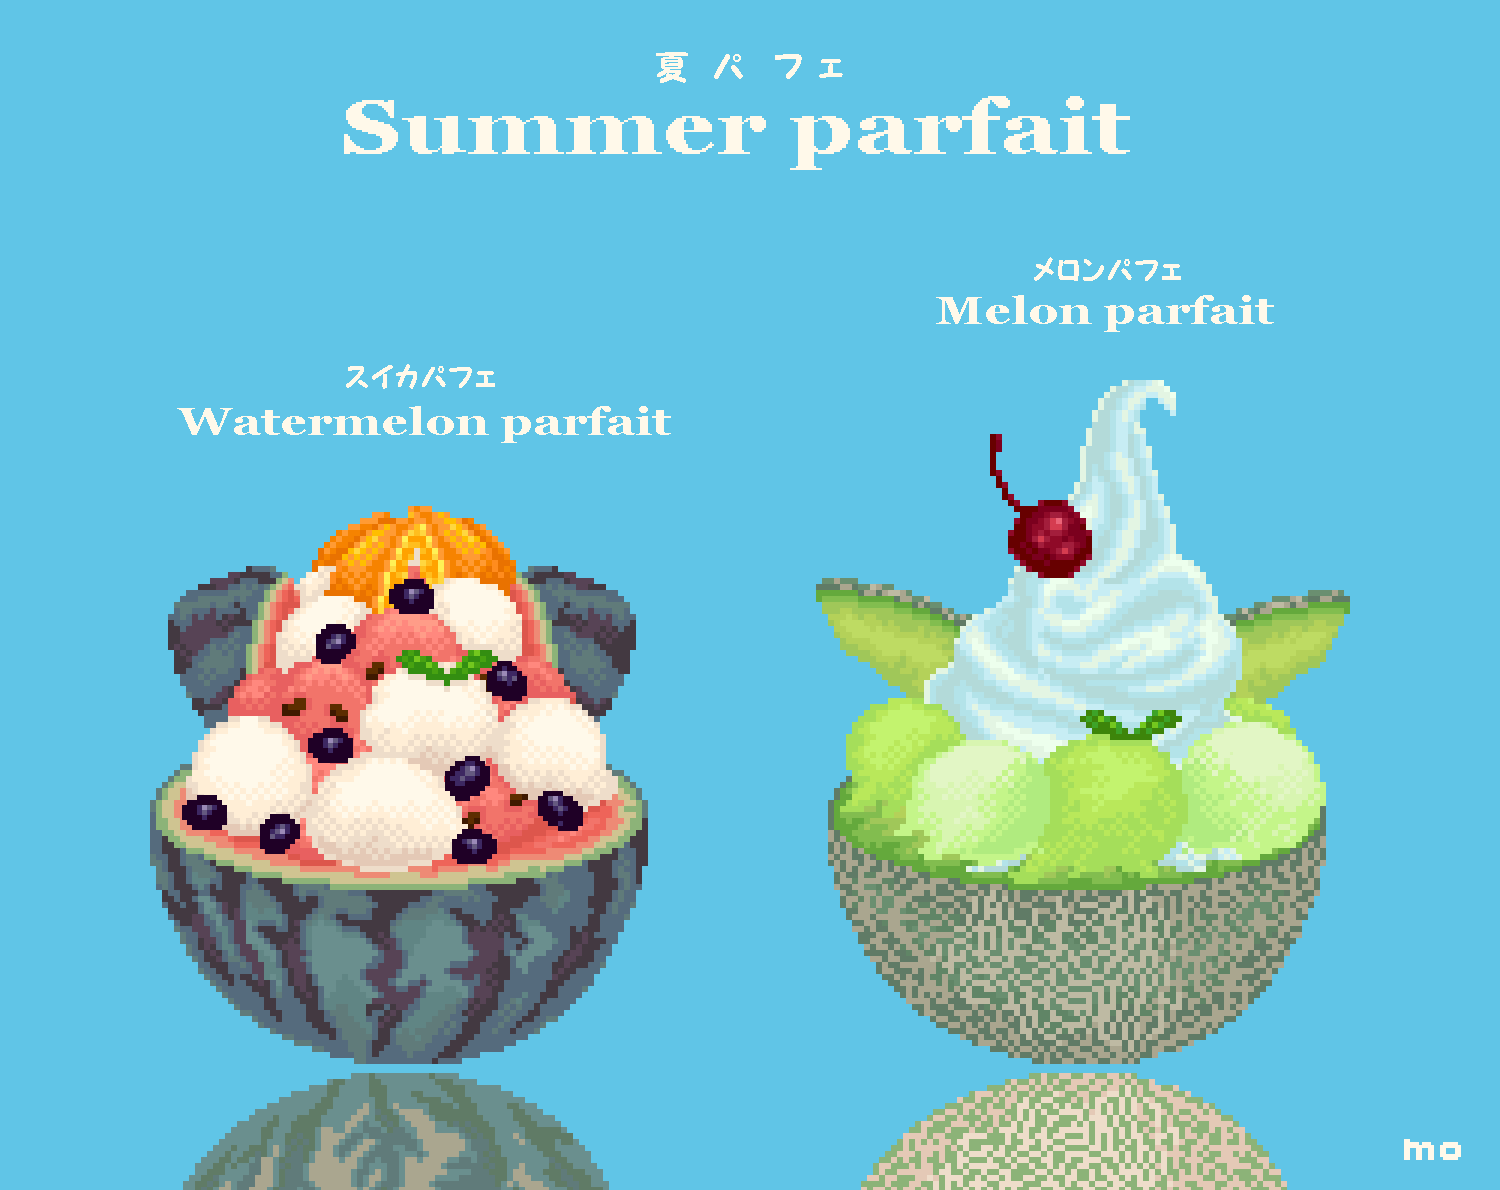 Watermelon parfait and Melon parfait